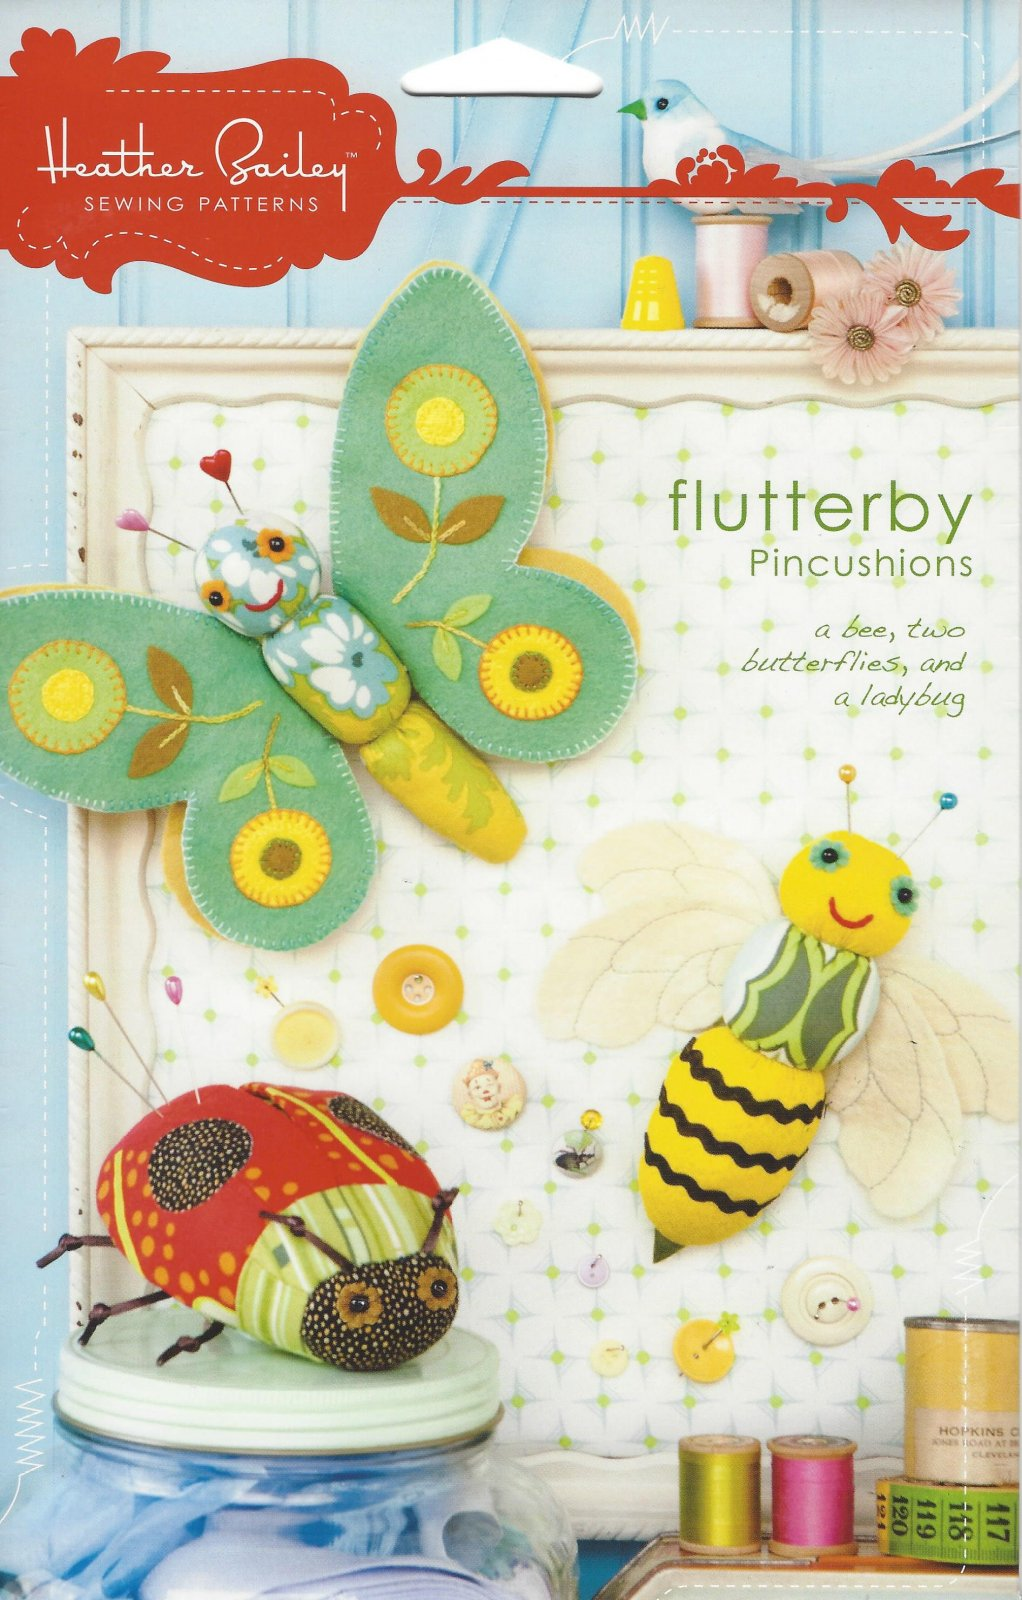 Heather Bailey...Flutterby Pincushions